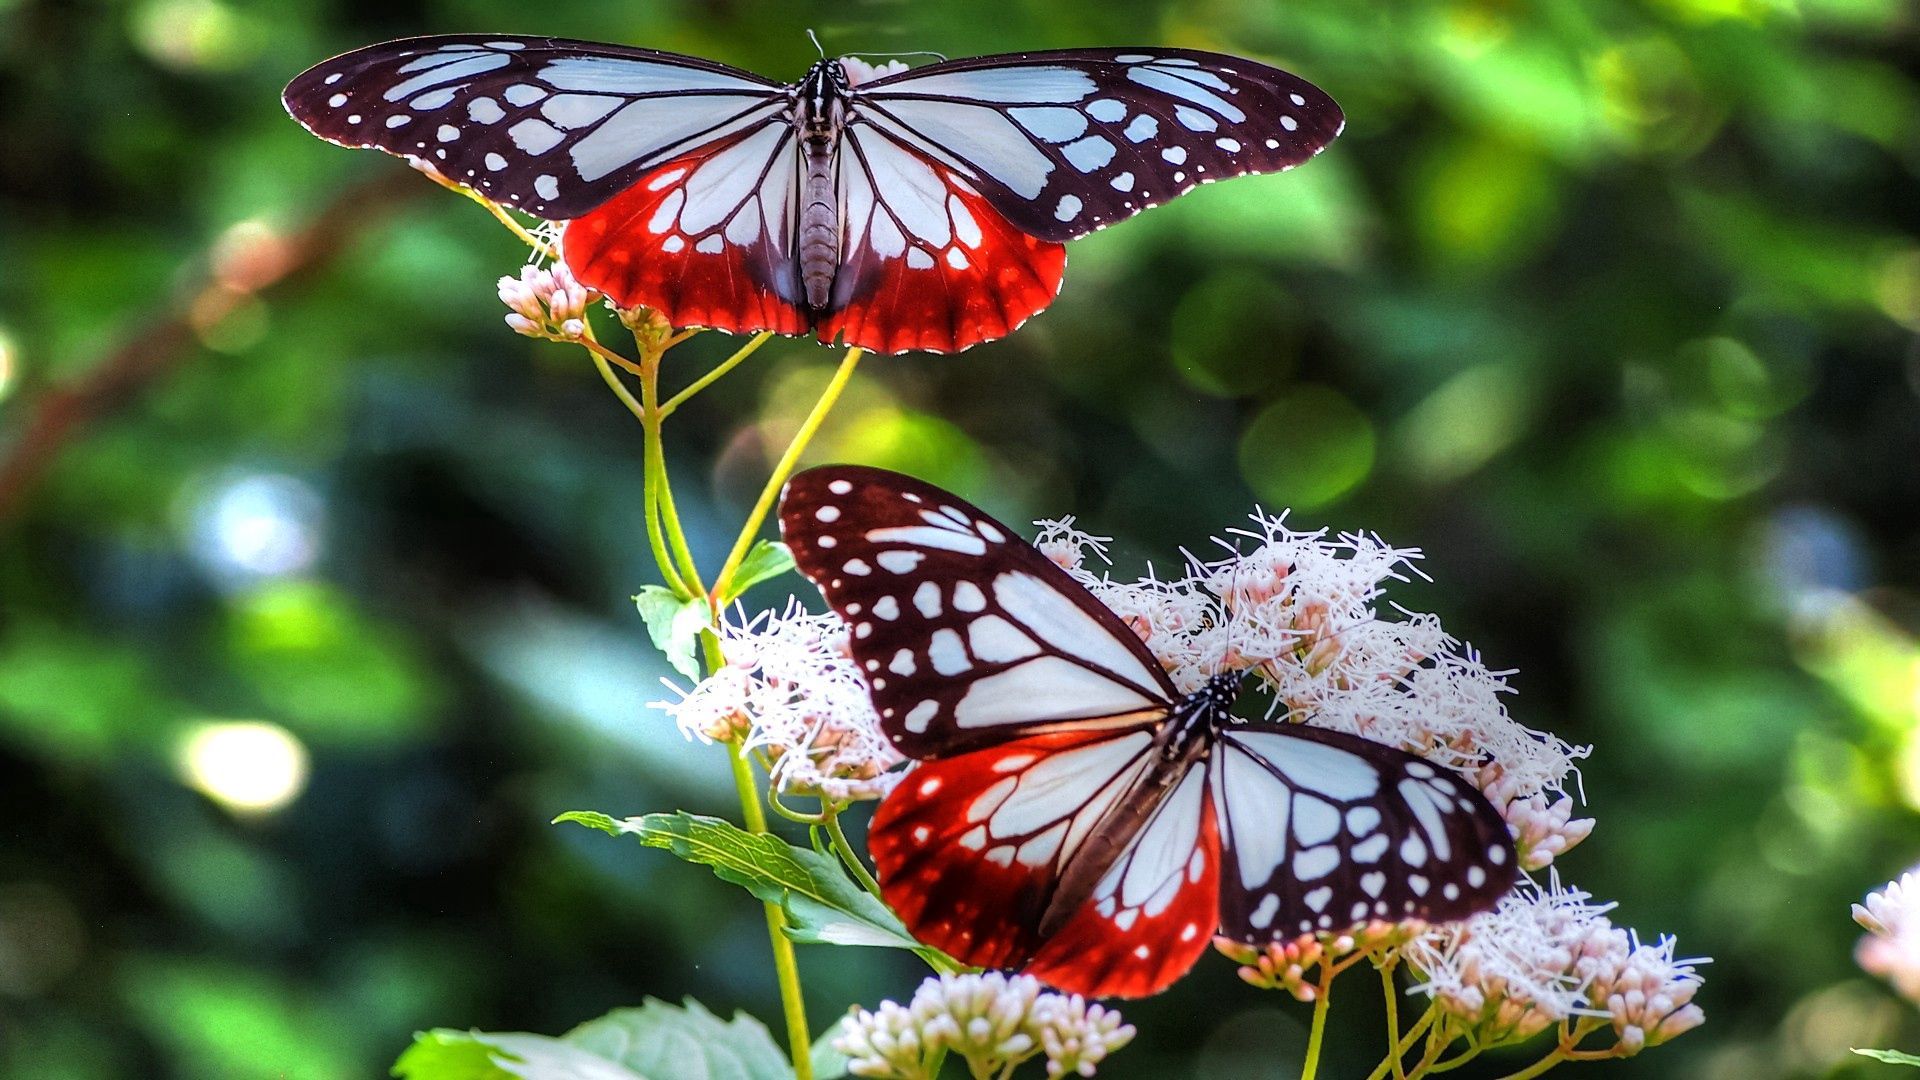 146660 download wallpaper Butterflies, Patterns, Macro, Lines, Insect screensavers and pictures for free